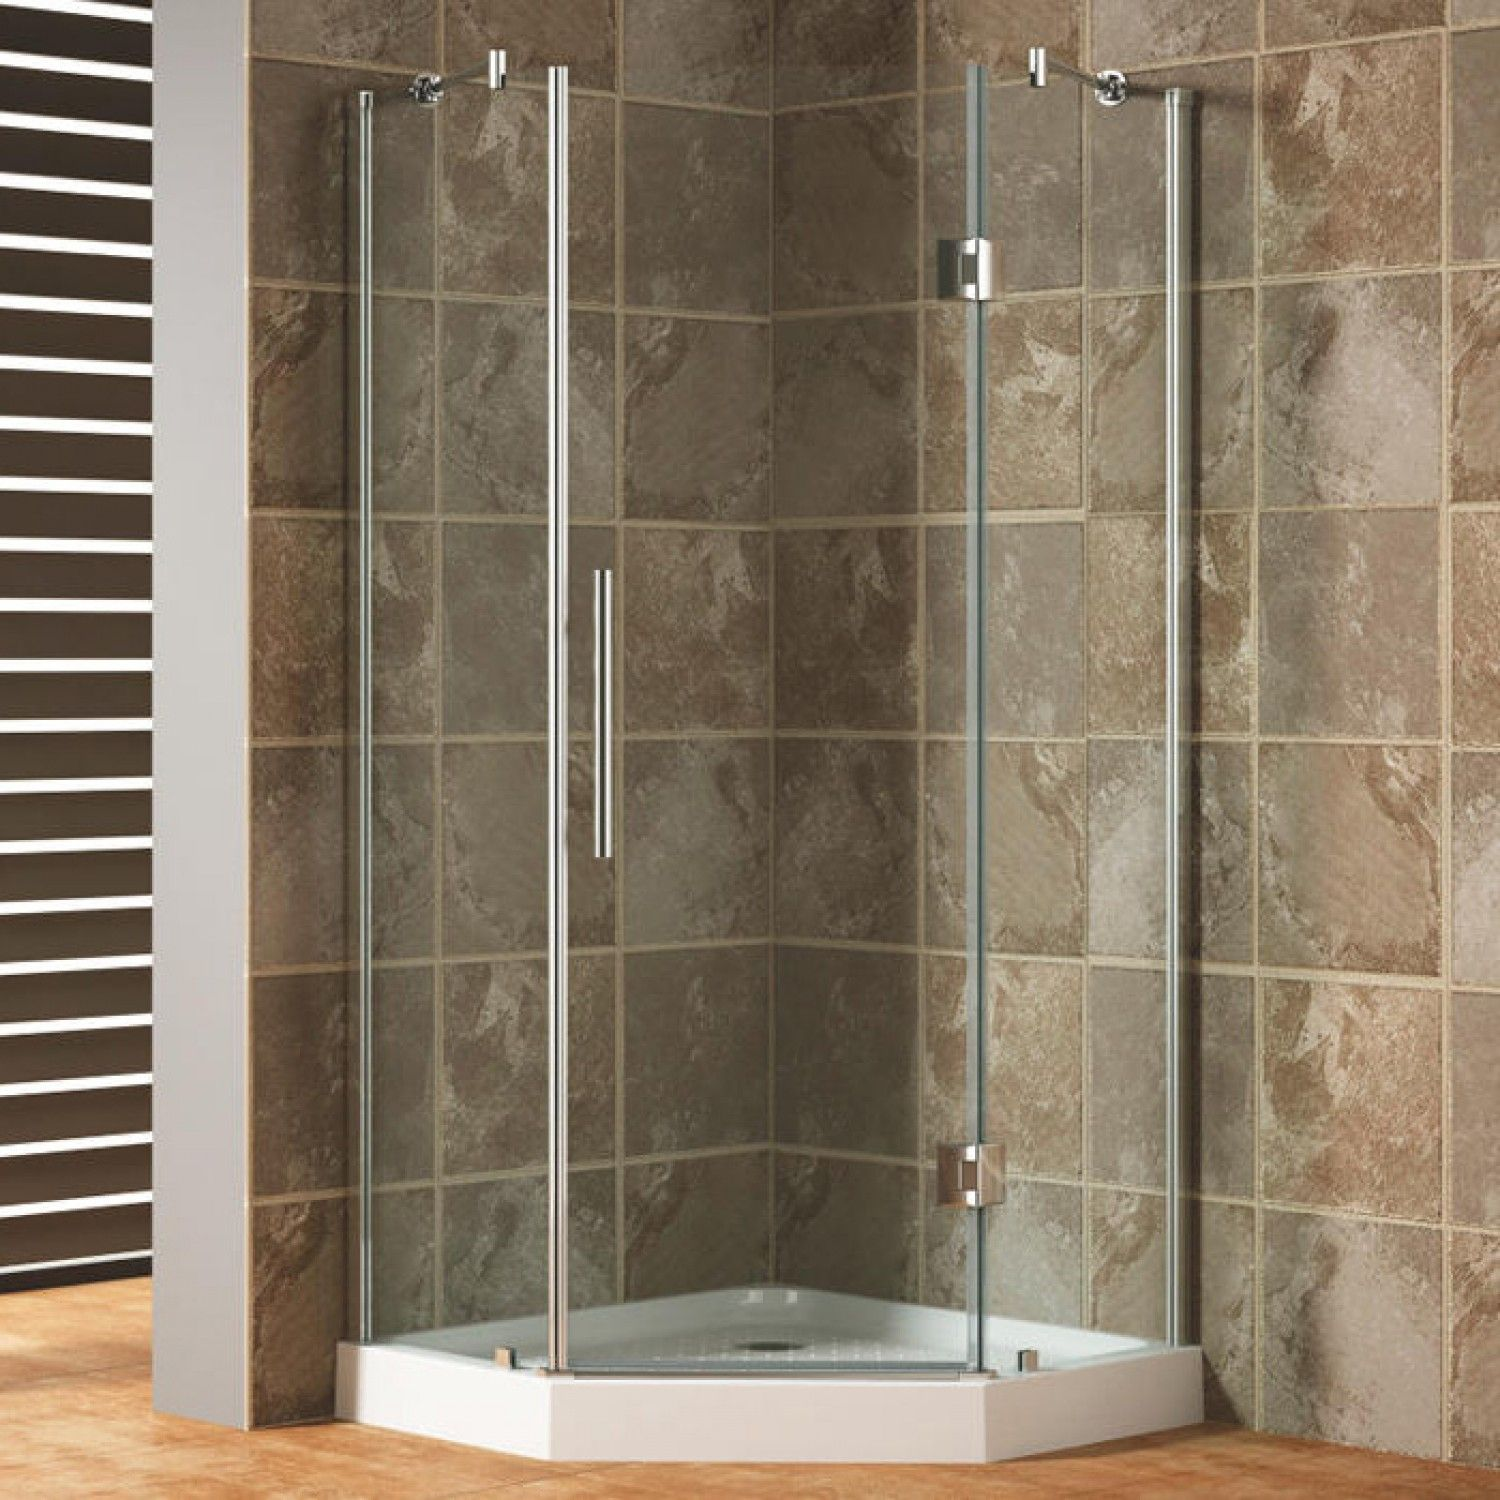 Glass Shower Stalls Enclosures | Home design ideas